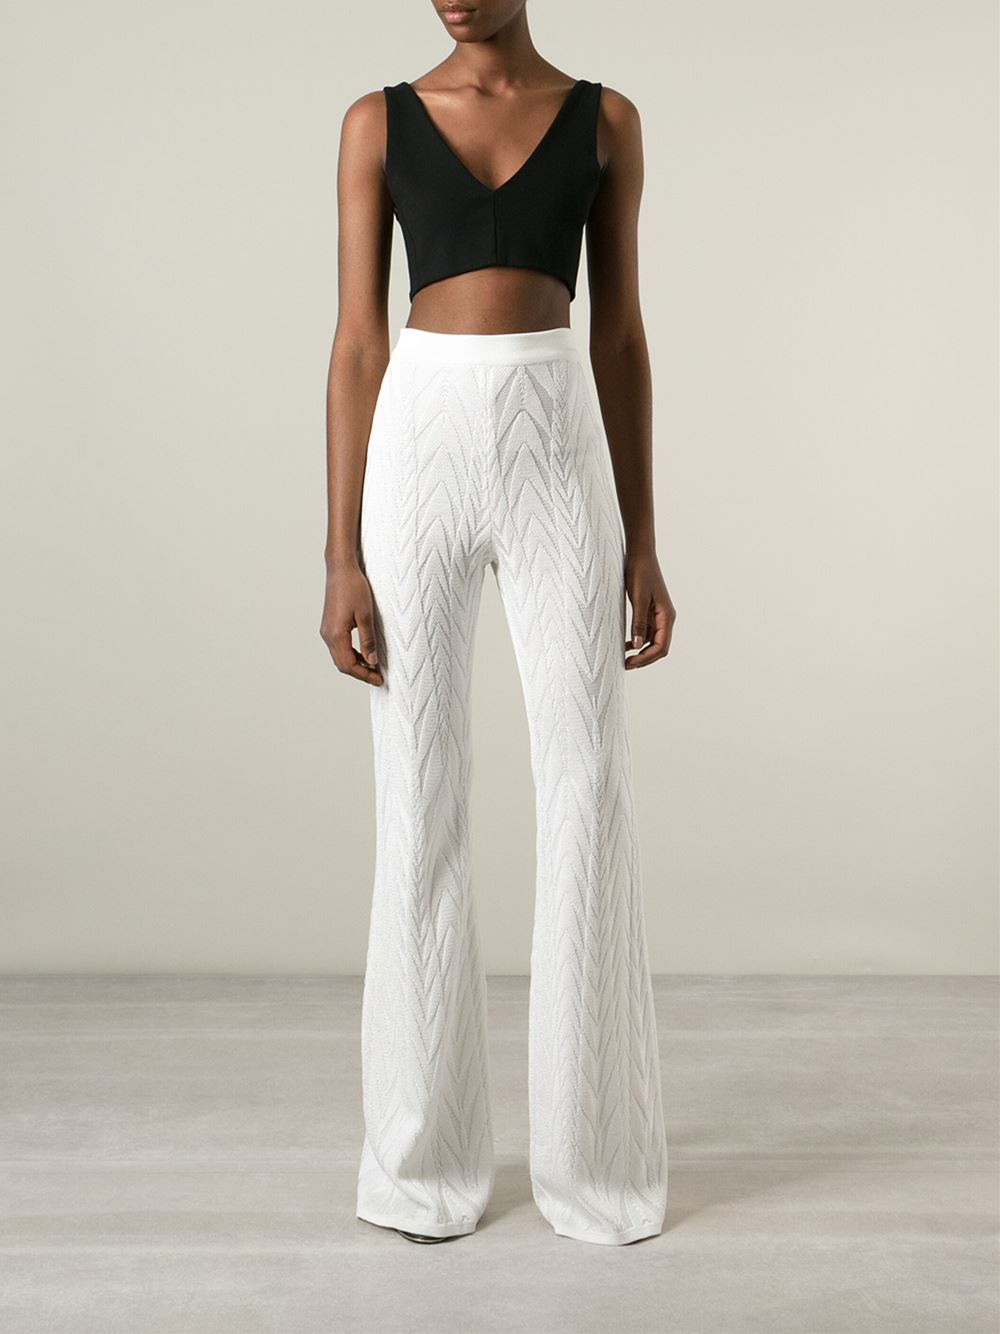 ad982e9d7fc2 balmain-white-wide-leg-knit-trousers-product-1-26973587-2-208389711-normal.jpeg